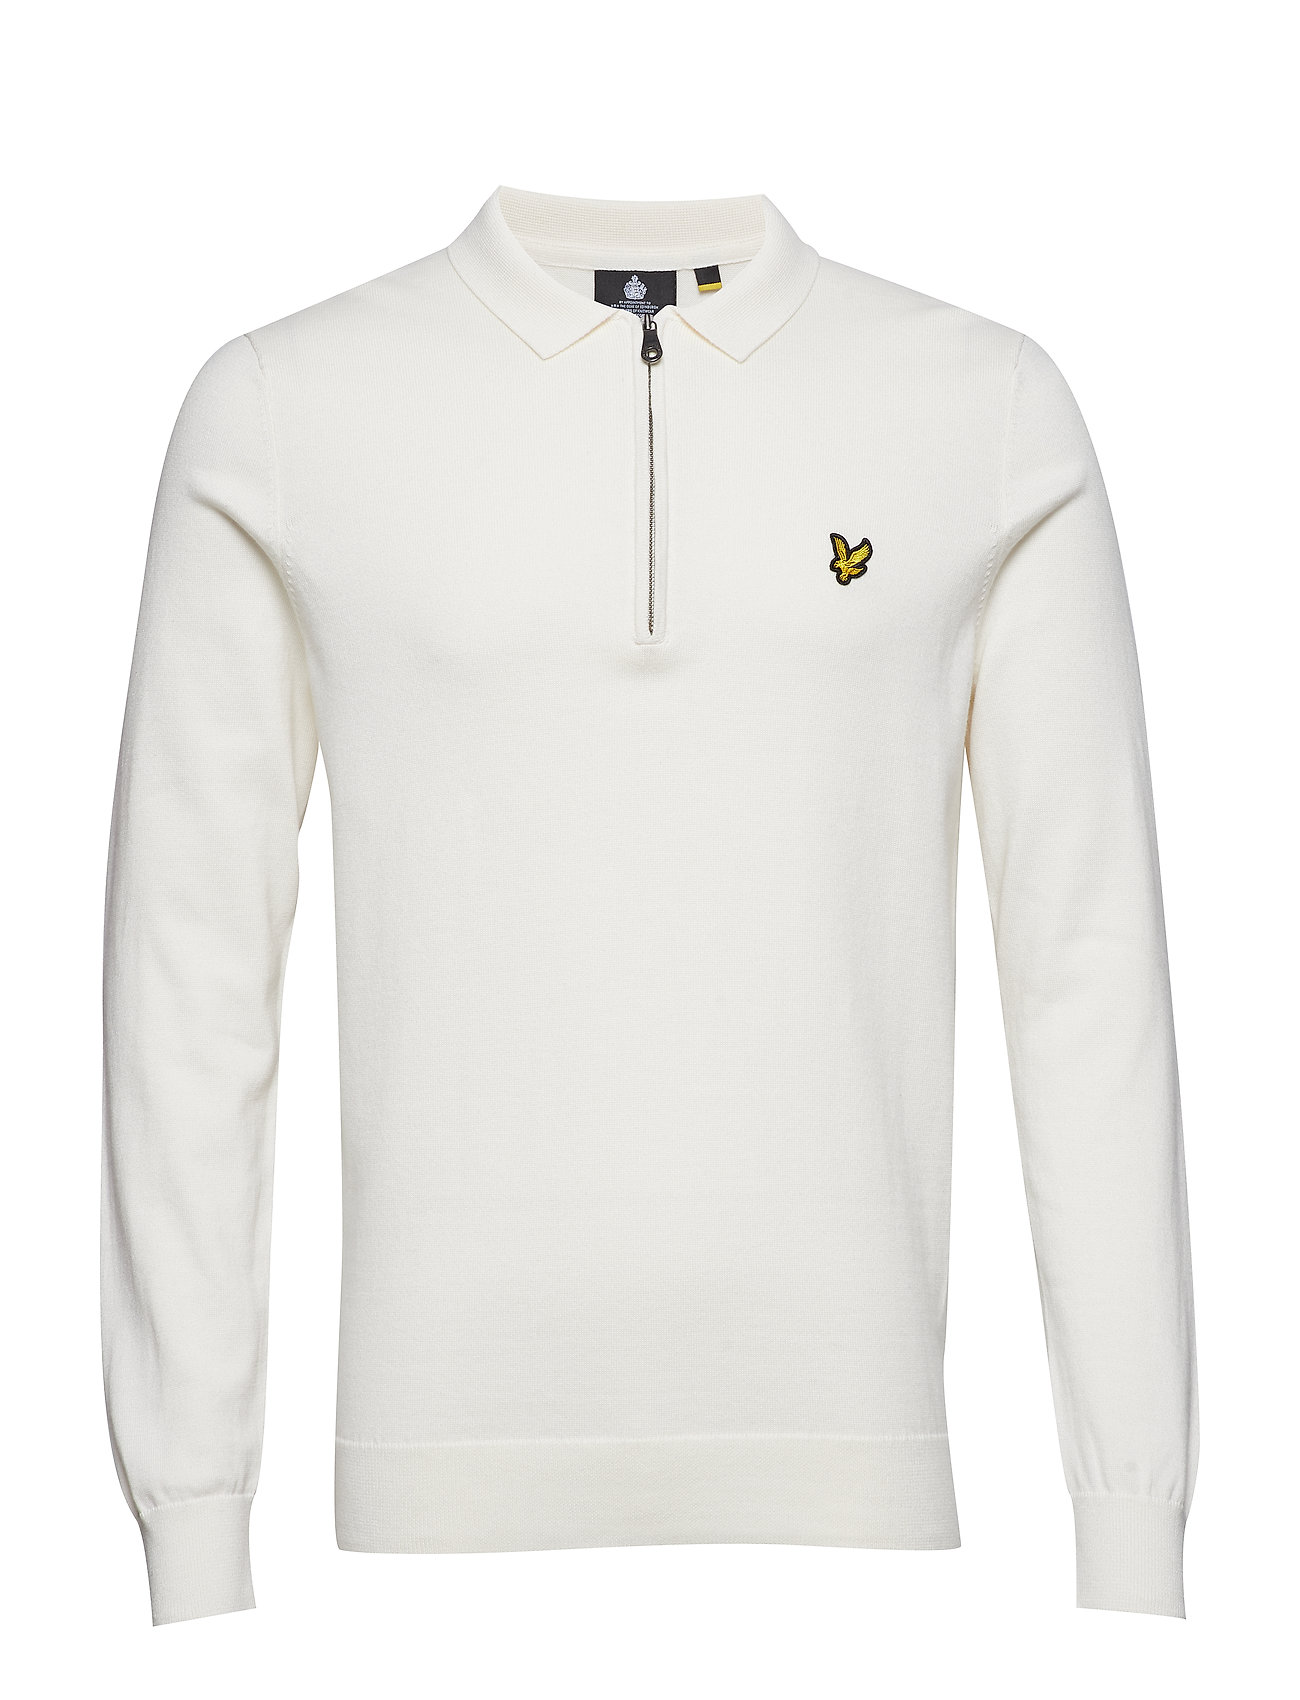 Image of Collared 1/4 Zip Sweatshirt Langærmet Trøje Creme LYLE & SCOTT (3101137183)